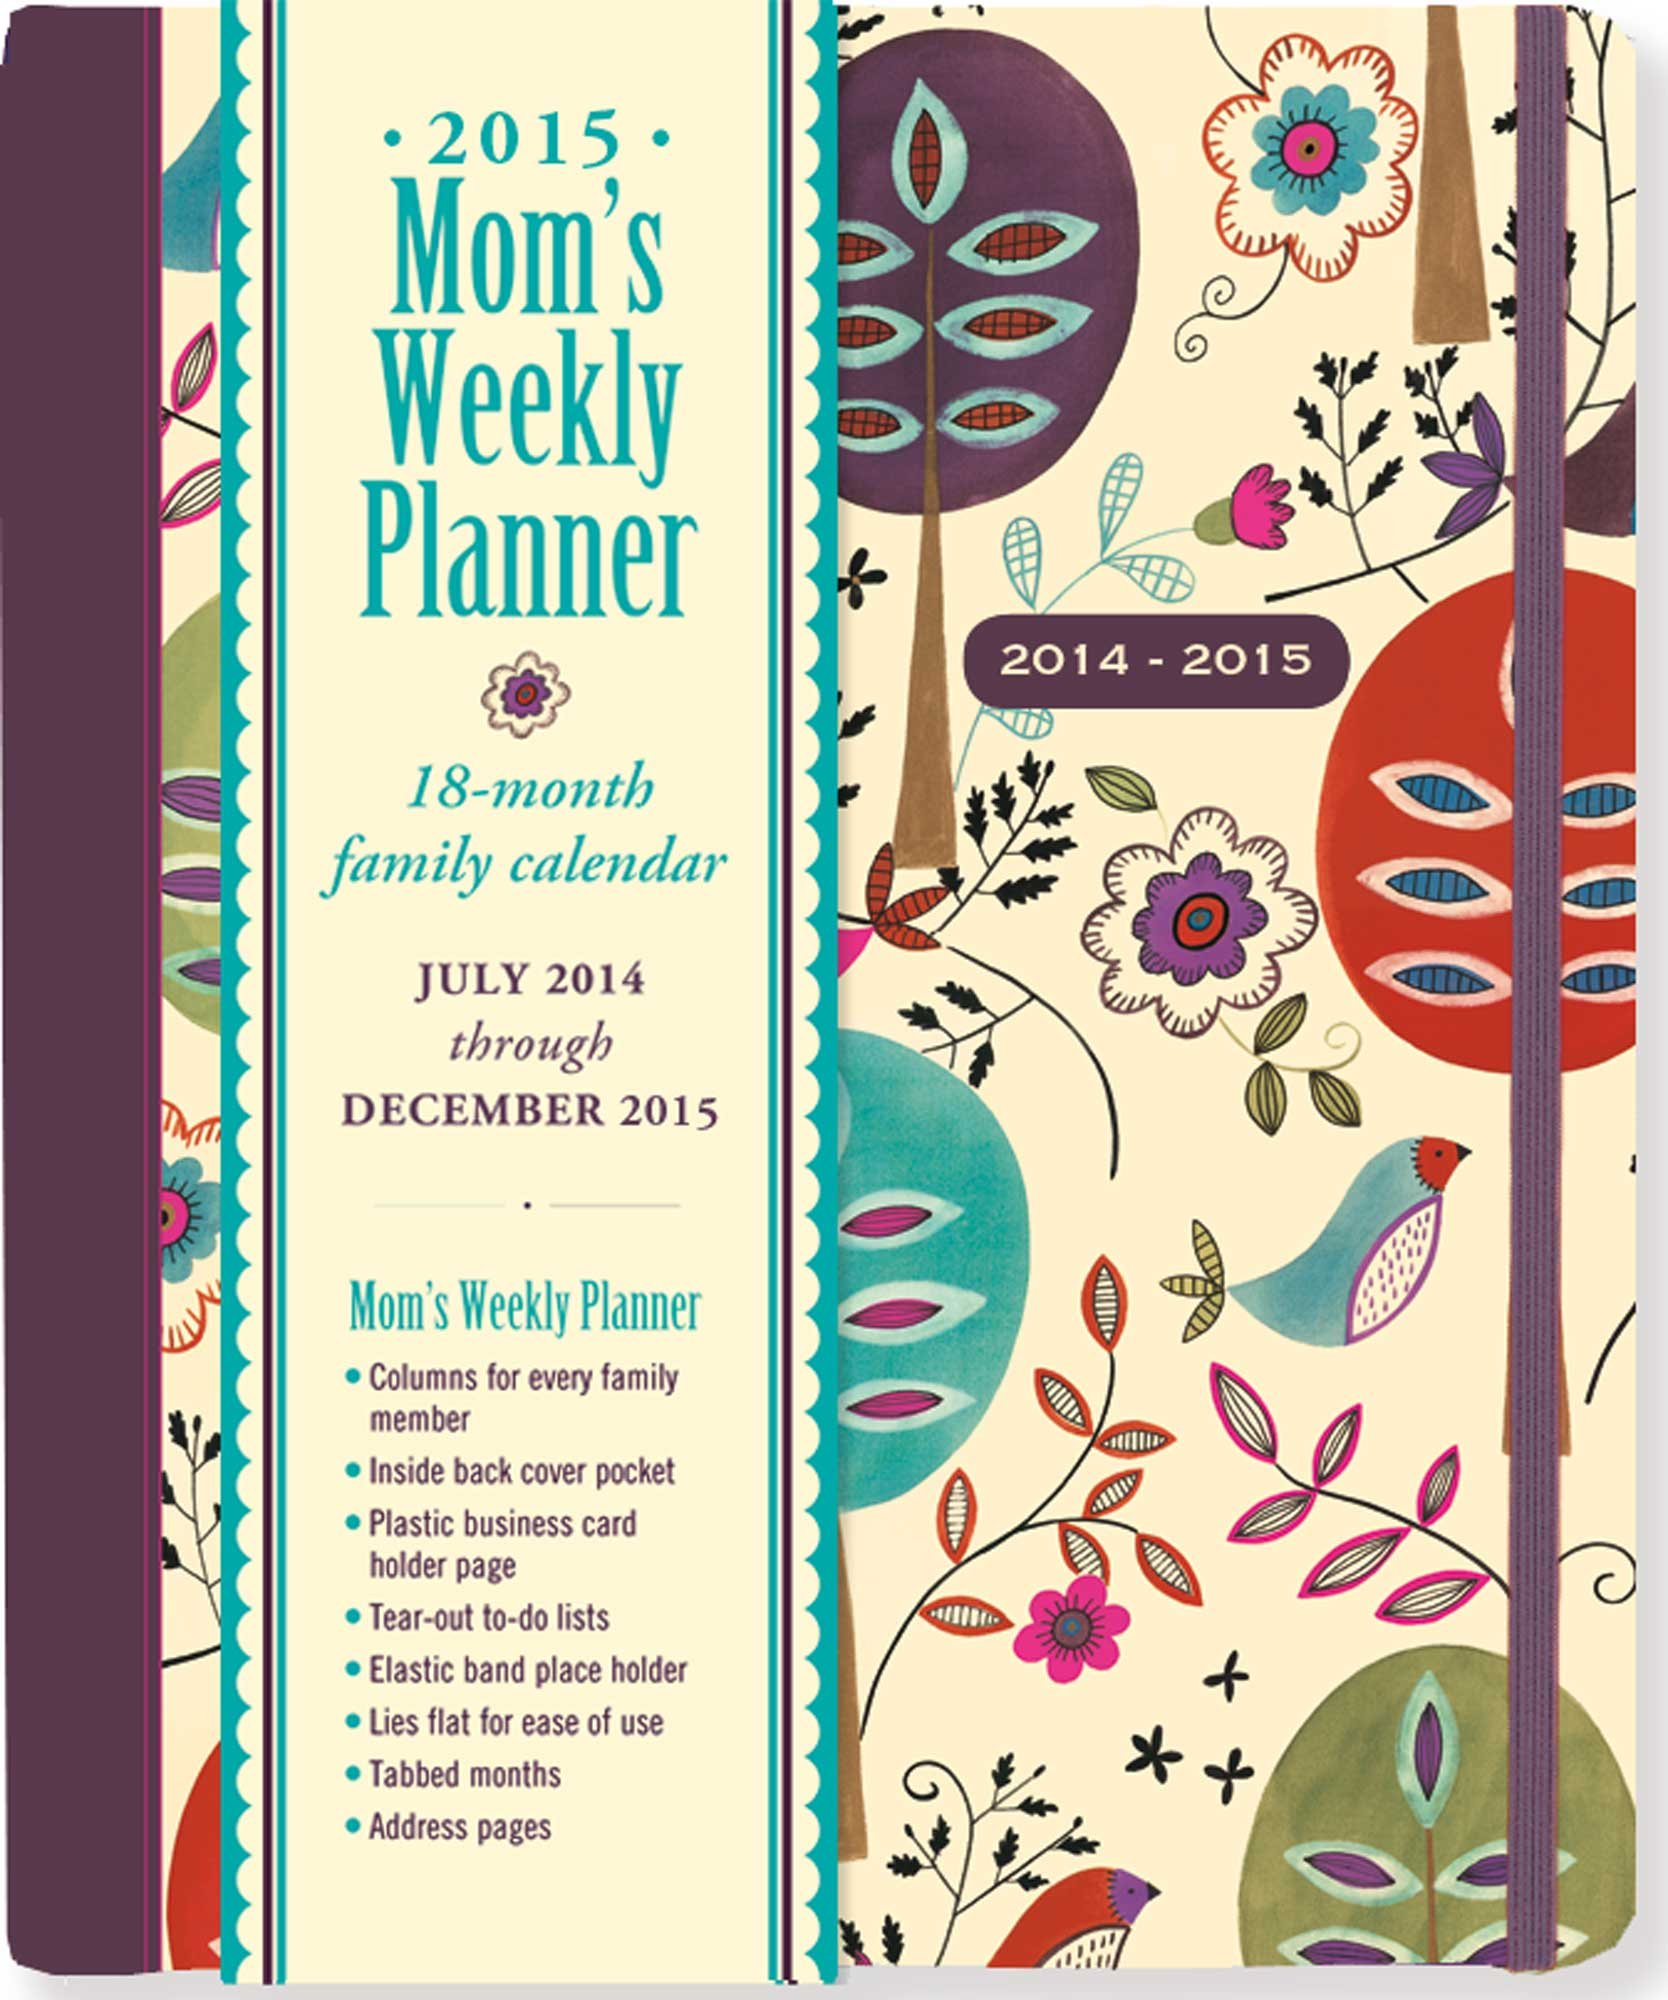 2015 folk art birds moms weekly planner 18 month calendar family calendar diary